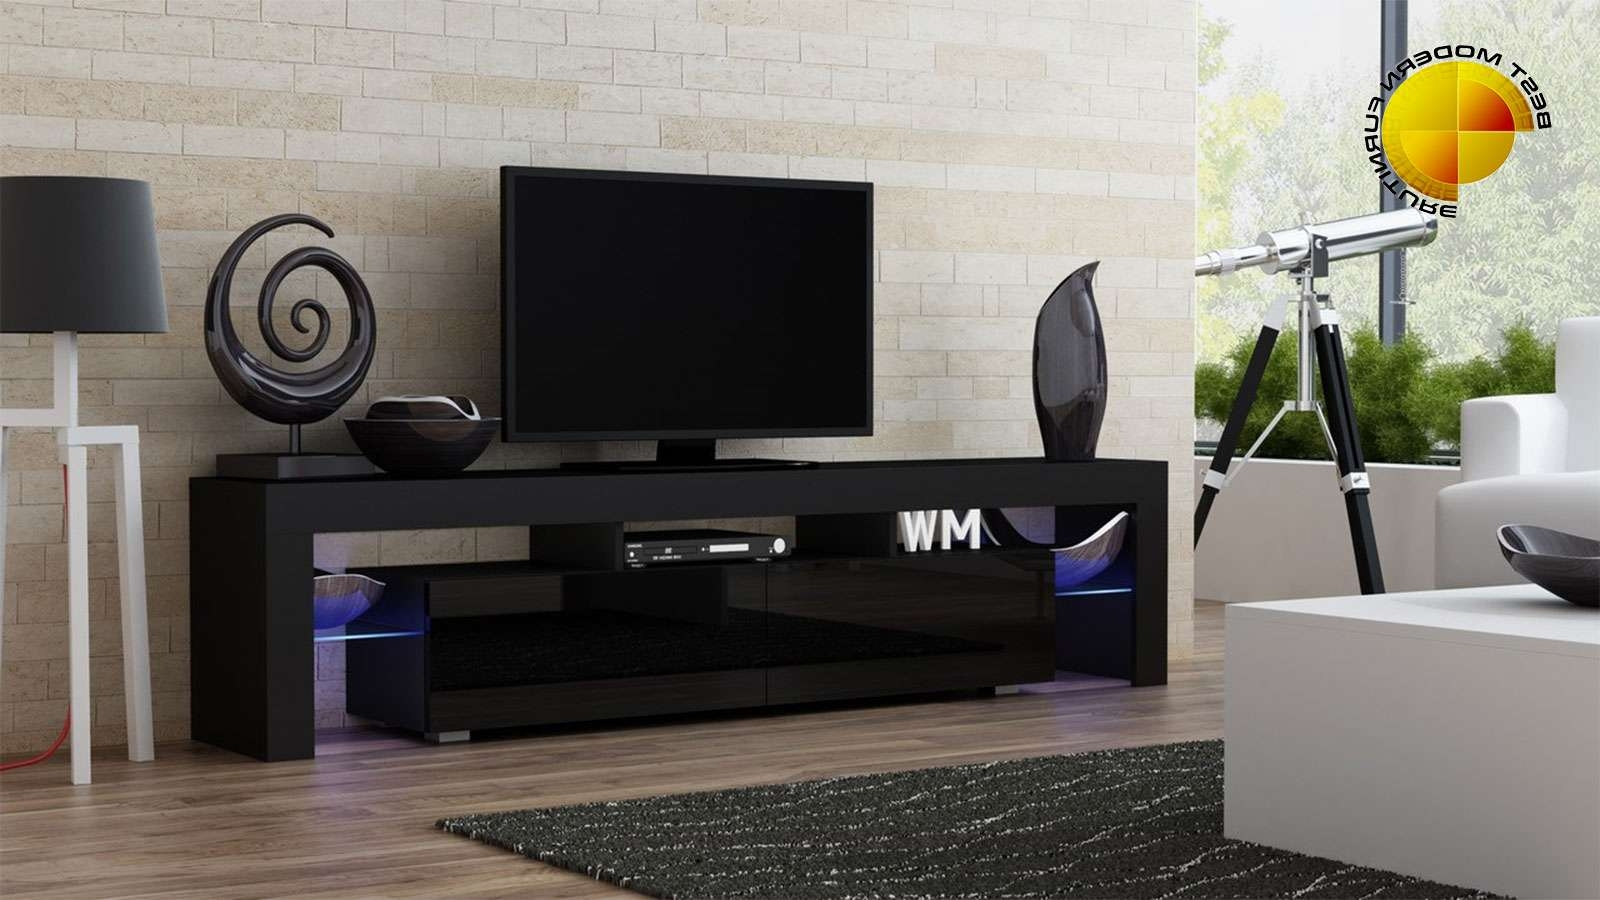 Modern Tv Stand 200cm High Gloss Cabinet Rgb Led Lights Black Unit Throughout Gloss Tv Stands (View 9 of 15)